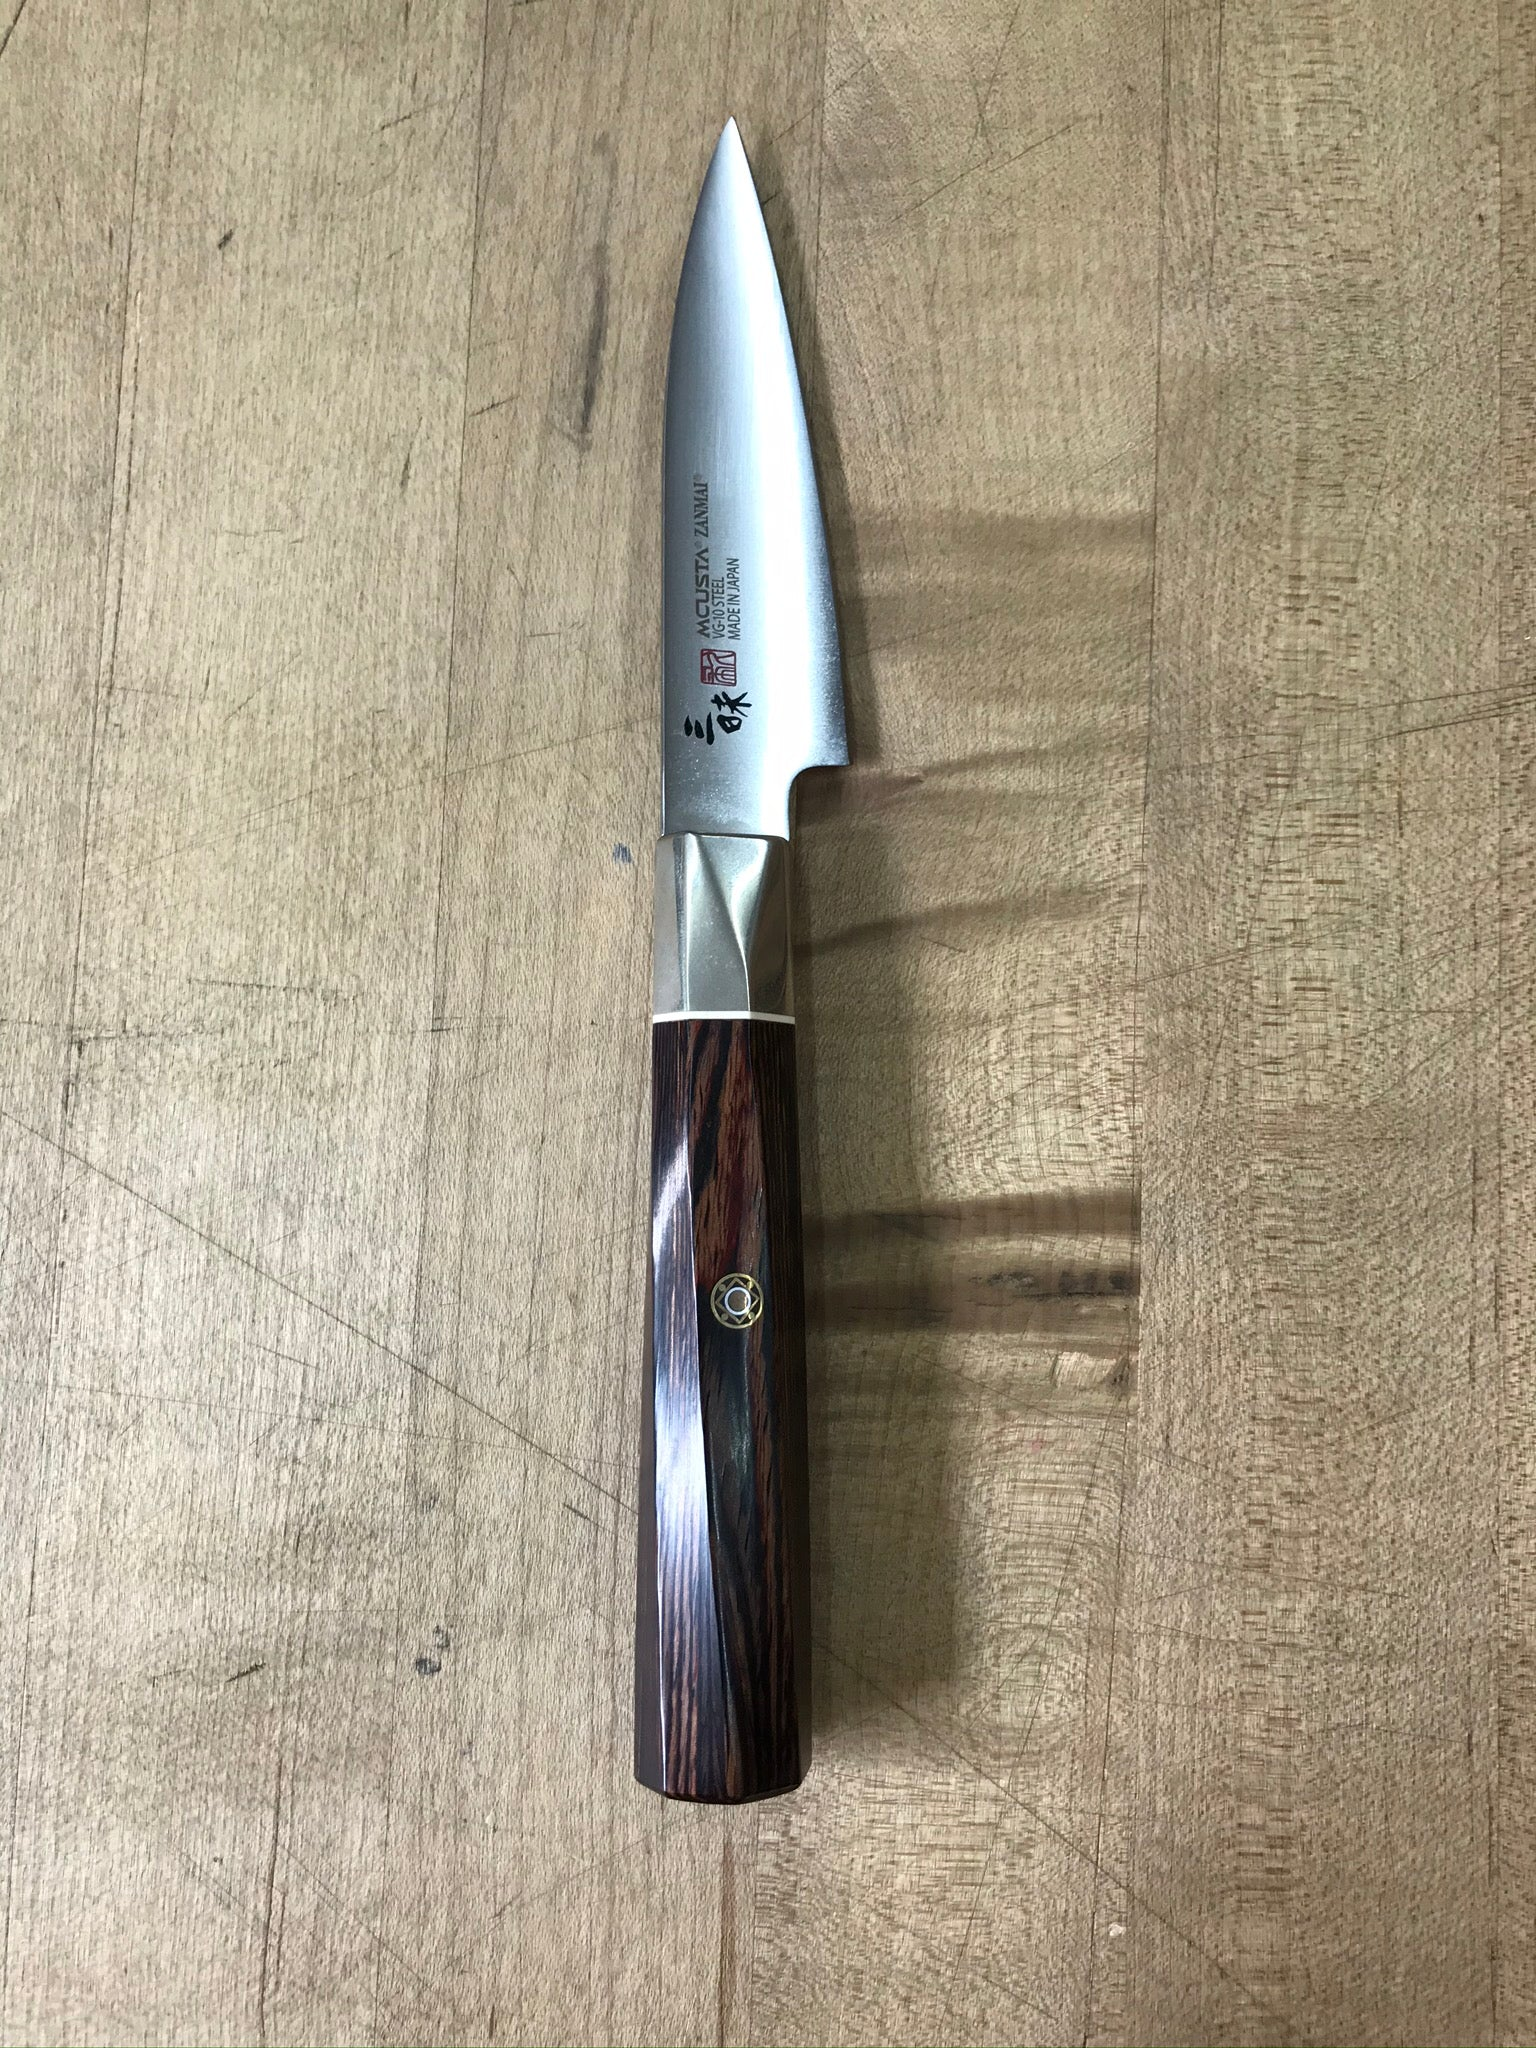 Mcusta Zanmai Supreme Twisted 90mm Petty